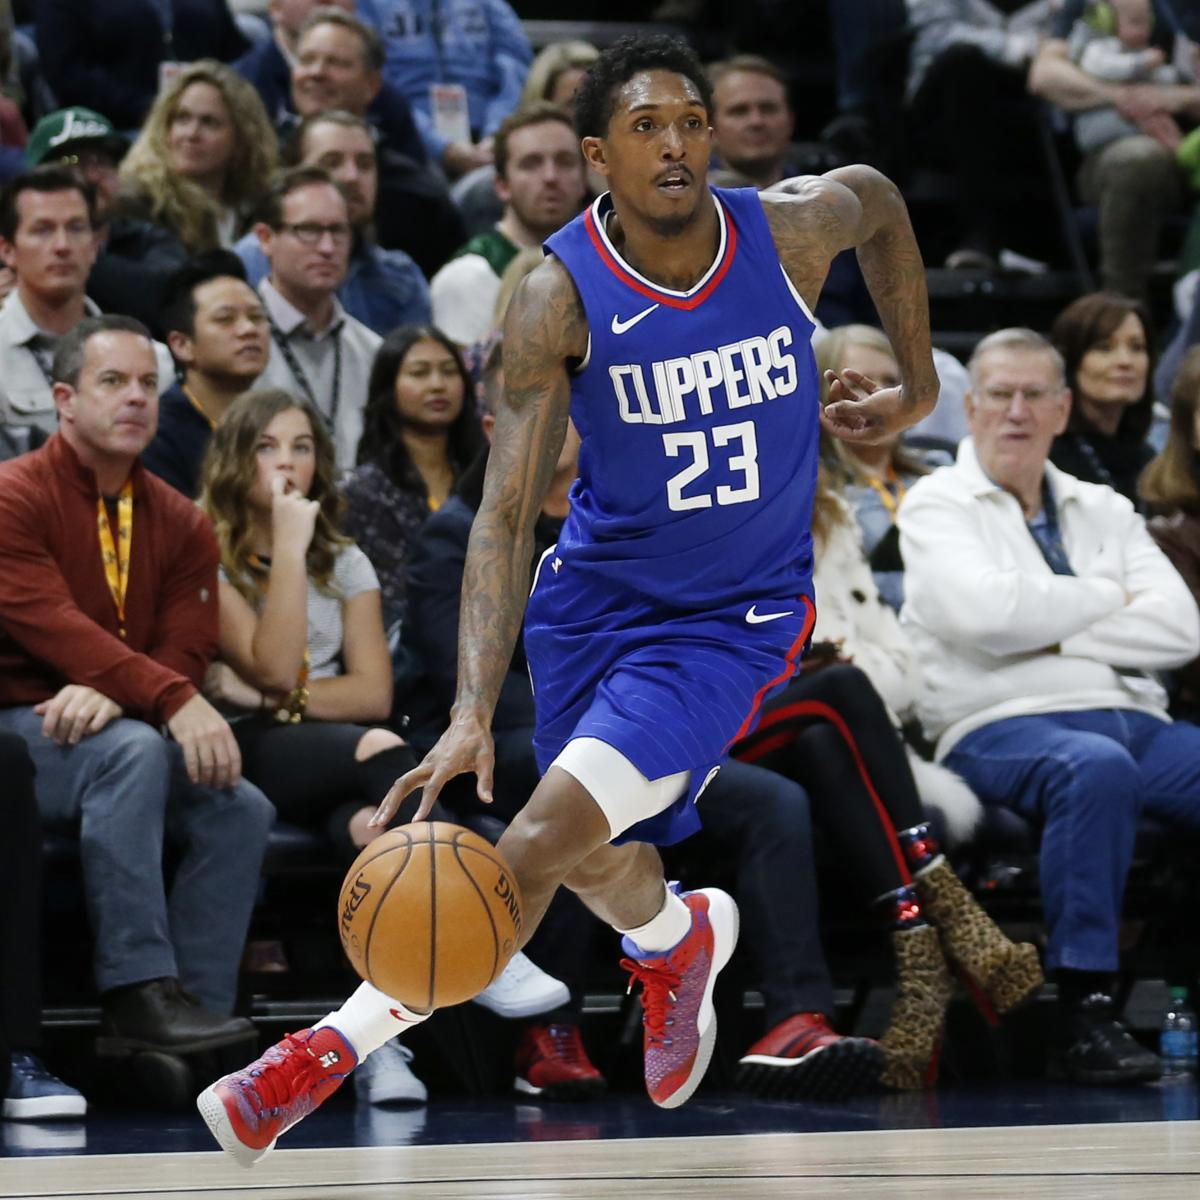 Nuggets Clippers Highlights: Clippers 2018-19 Schedule: Top Games, Championship Odds